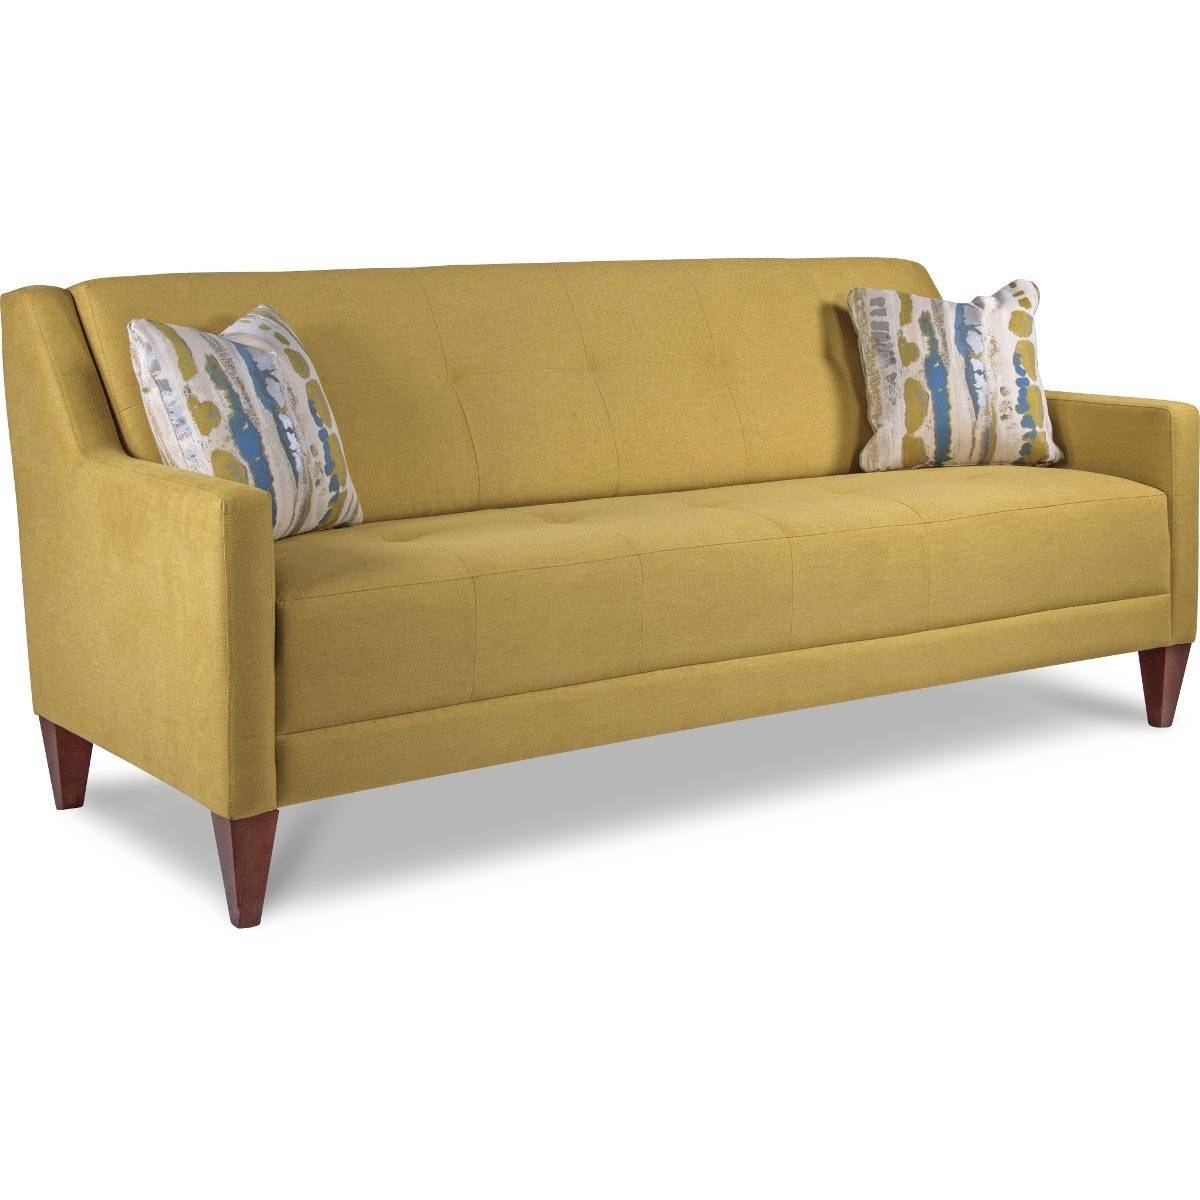 Verve Premier Sofa in Sofas (Image 15 of 15)